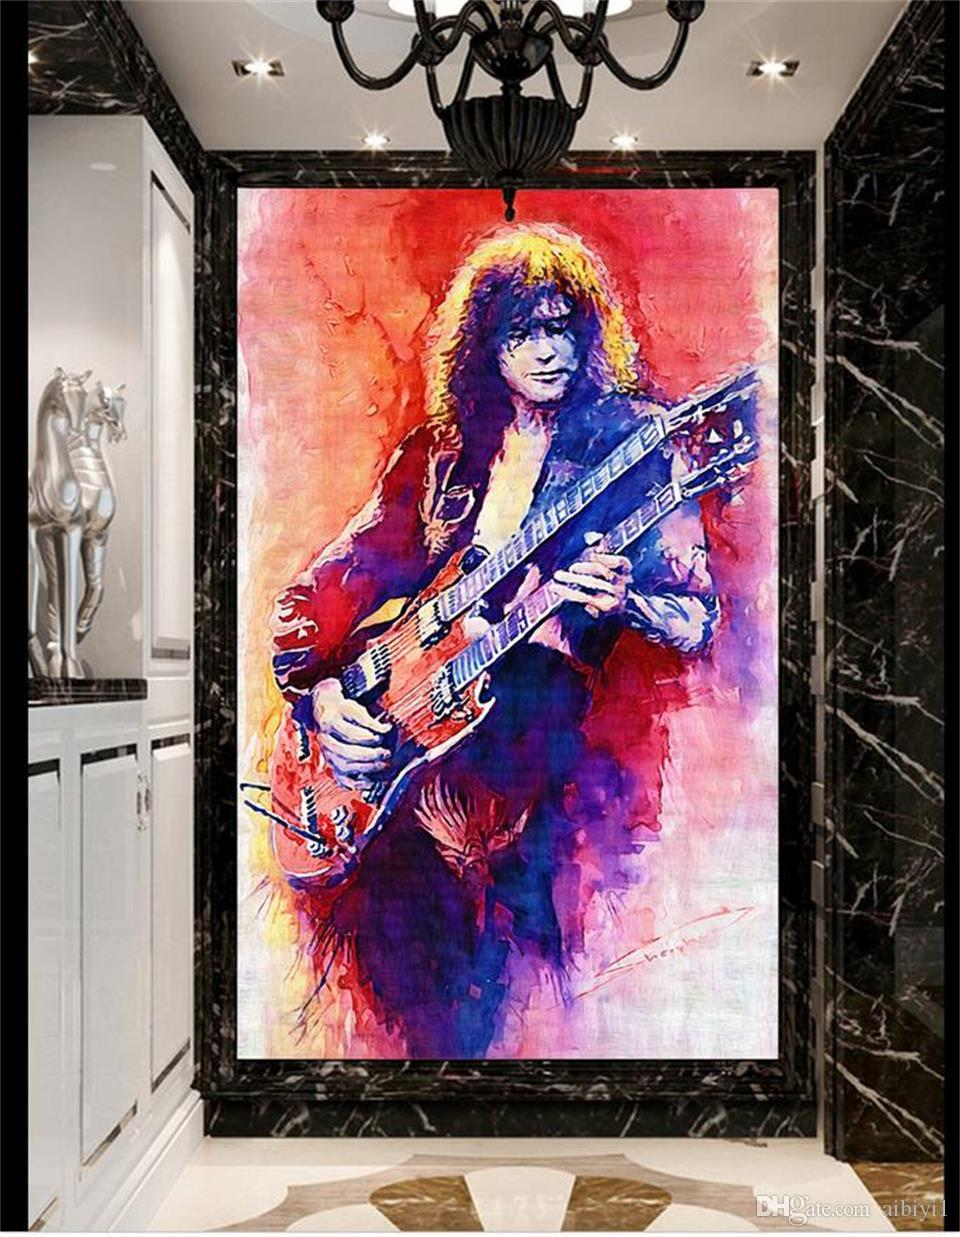 custom size 3d photo wallpaper living room mural rock guitarist oil painting bar porch backdrop wall wallpaper non-woven wall sticker